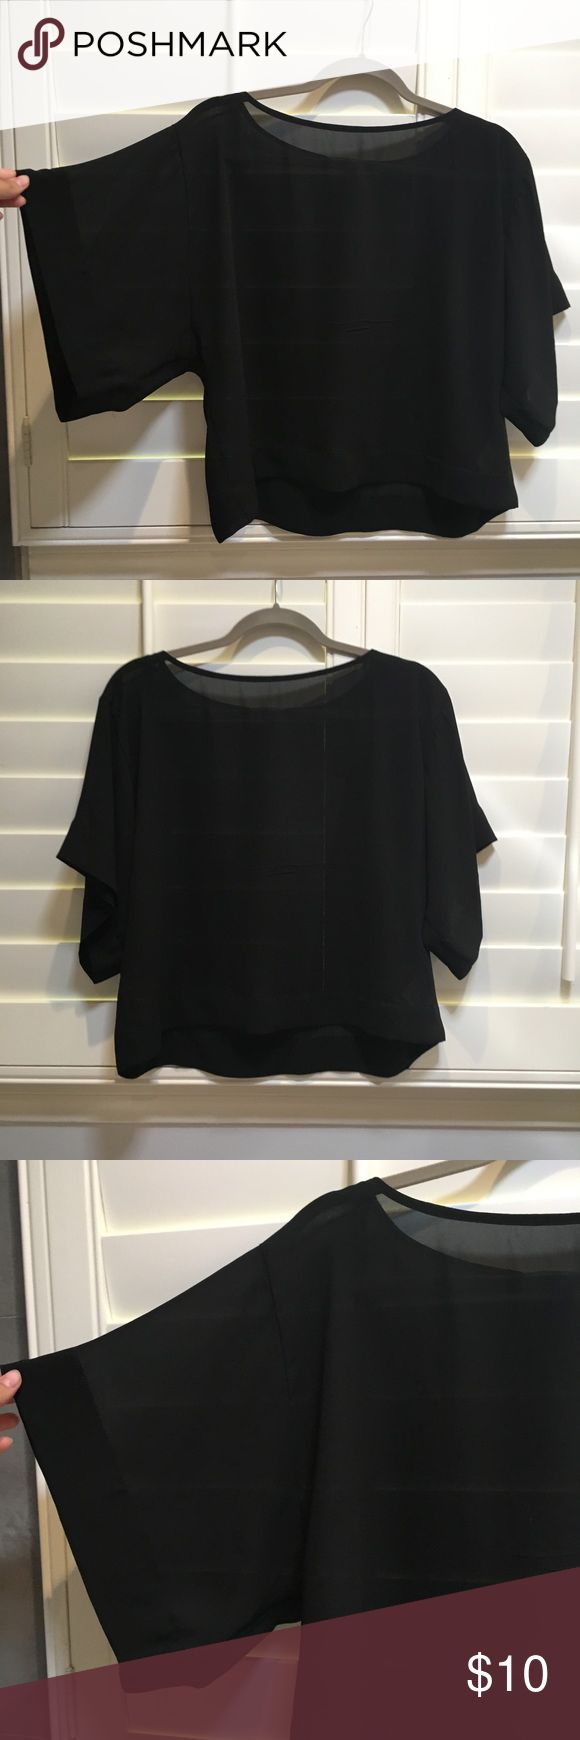 LF see through black blouse Super cute, in perfect condition! Can be dressed up or dressed down LF Tops Blouses